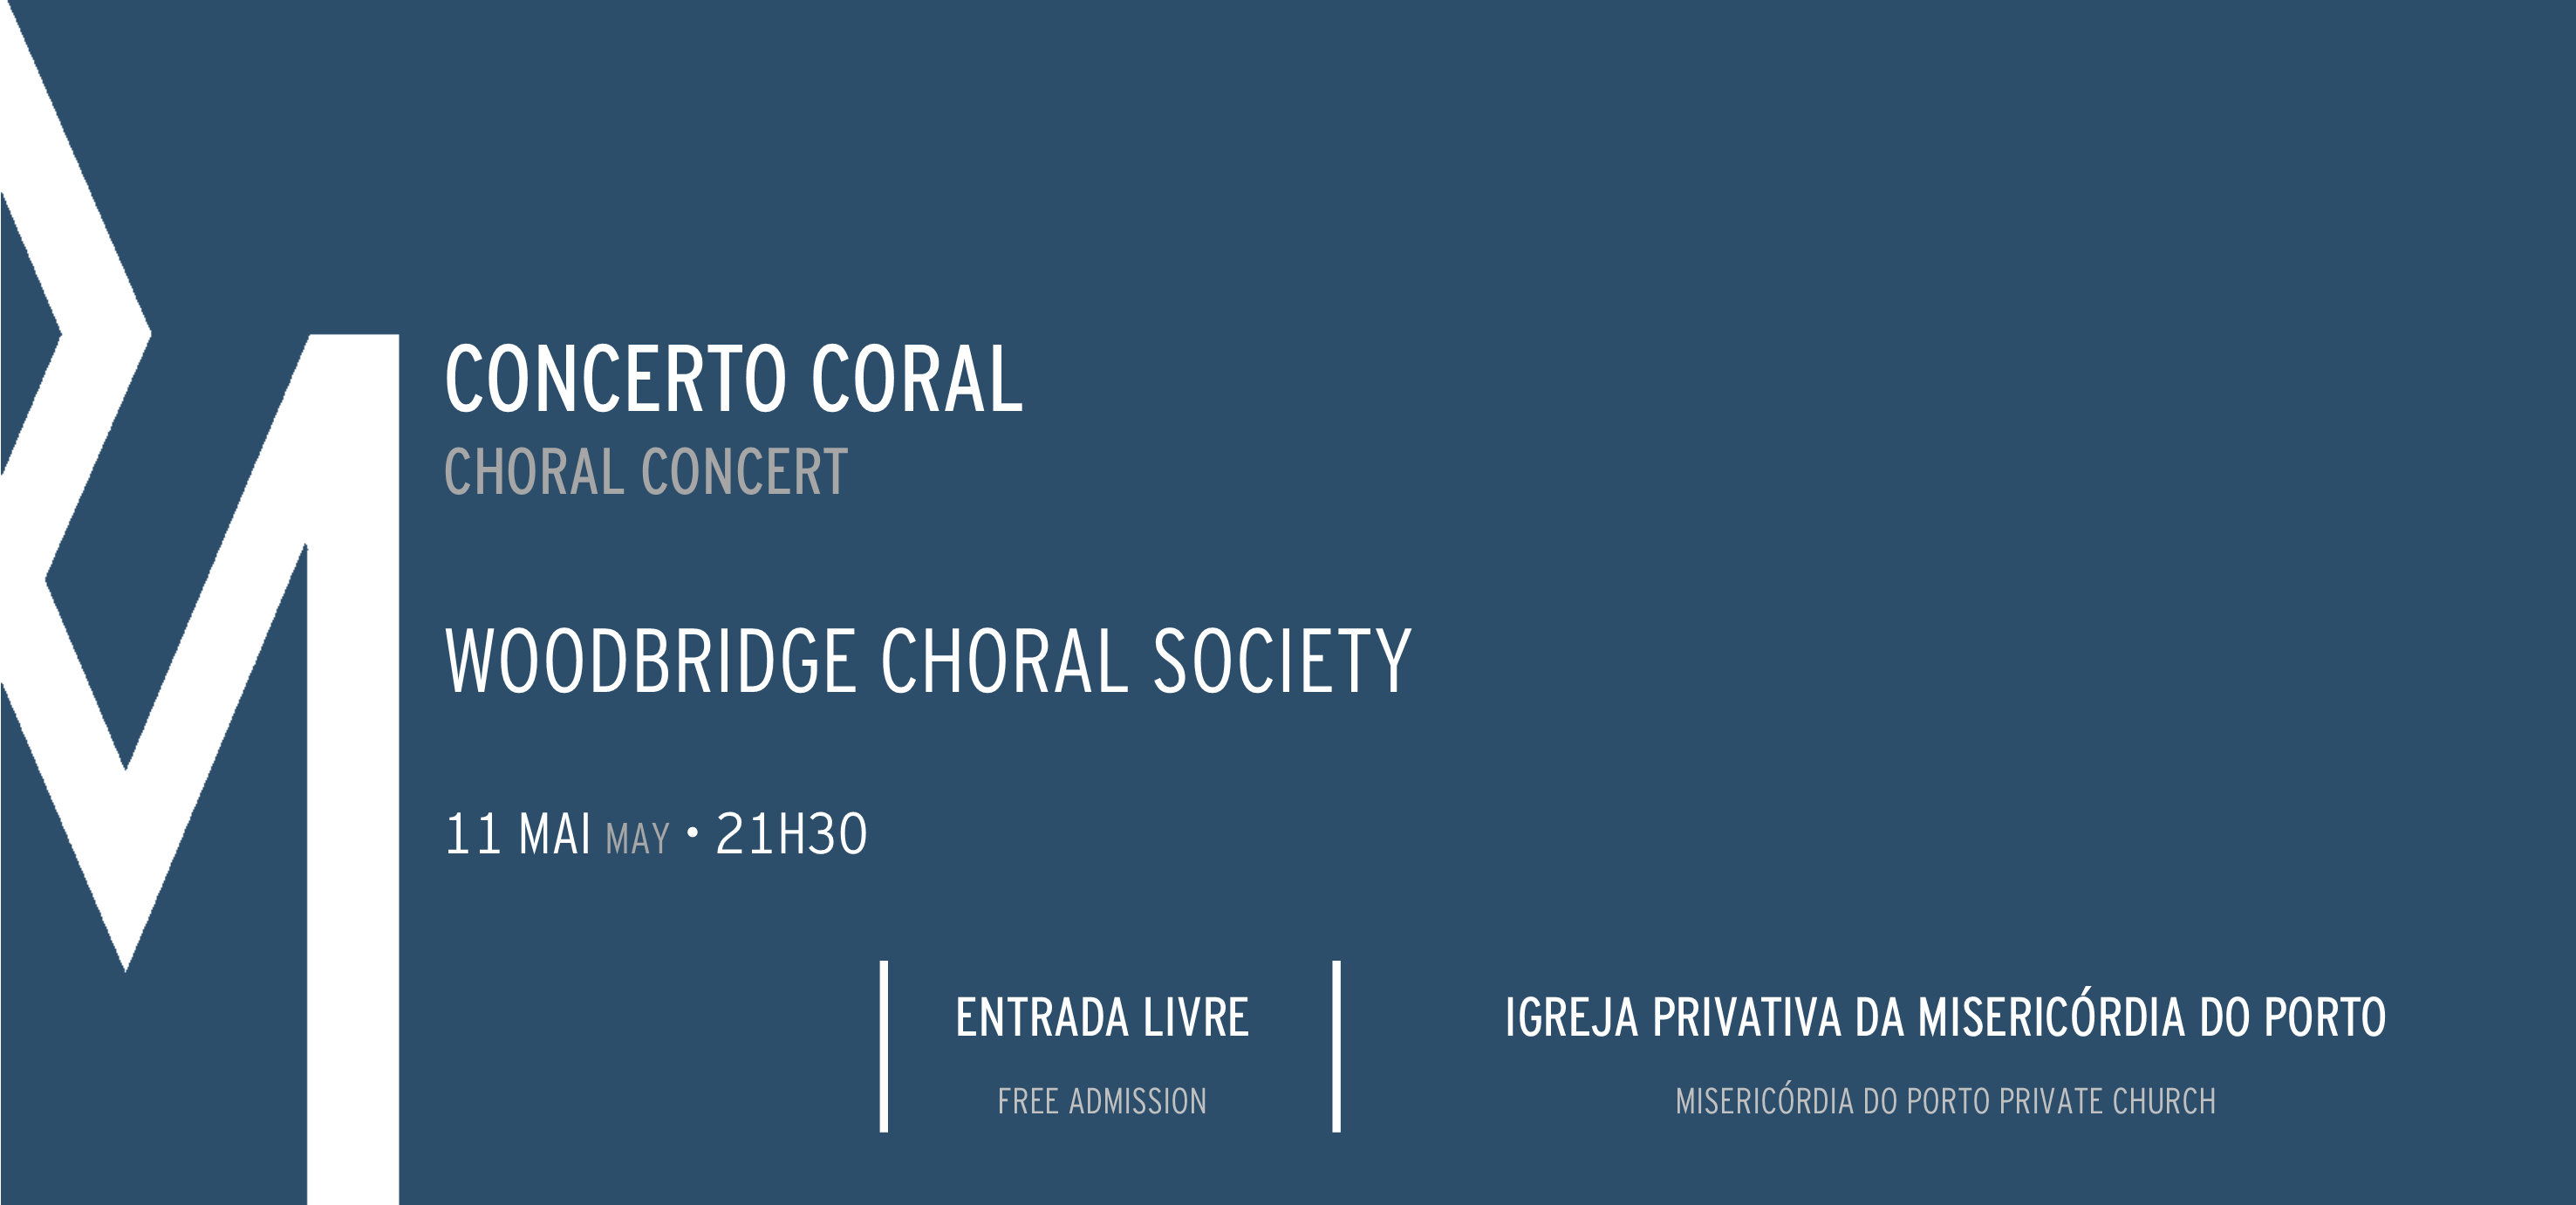 https://www.scmp.pt/assets/misc/img/noticias/2018/2018%2005%2011%20Concerto%20Coro/2018-05-11%20banner.png